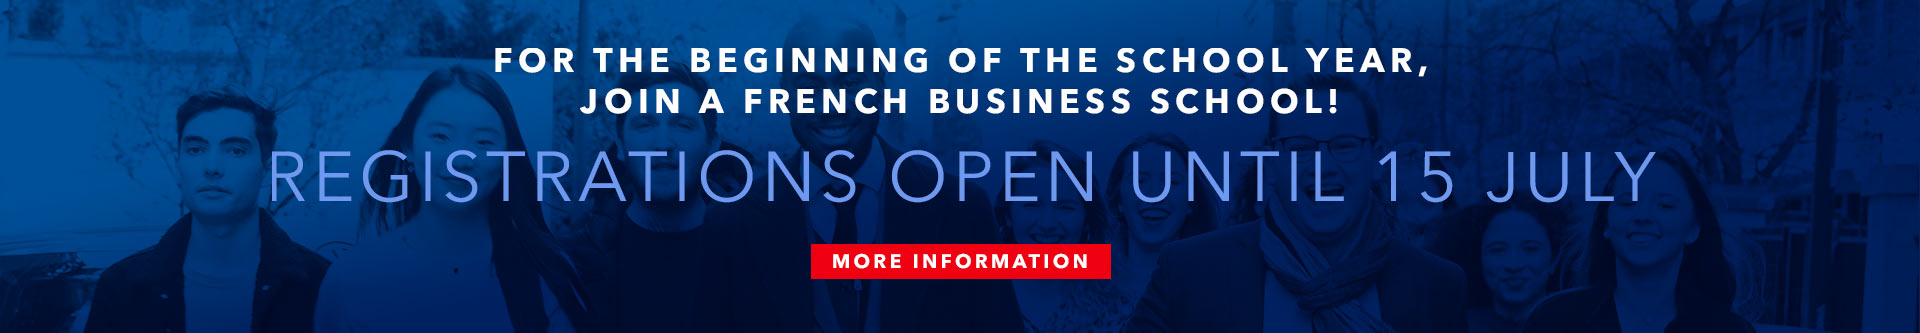 Join a French Business School!